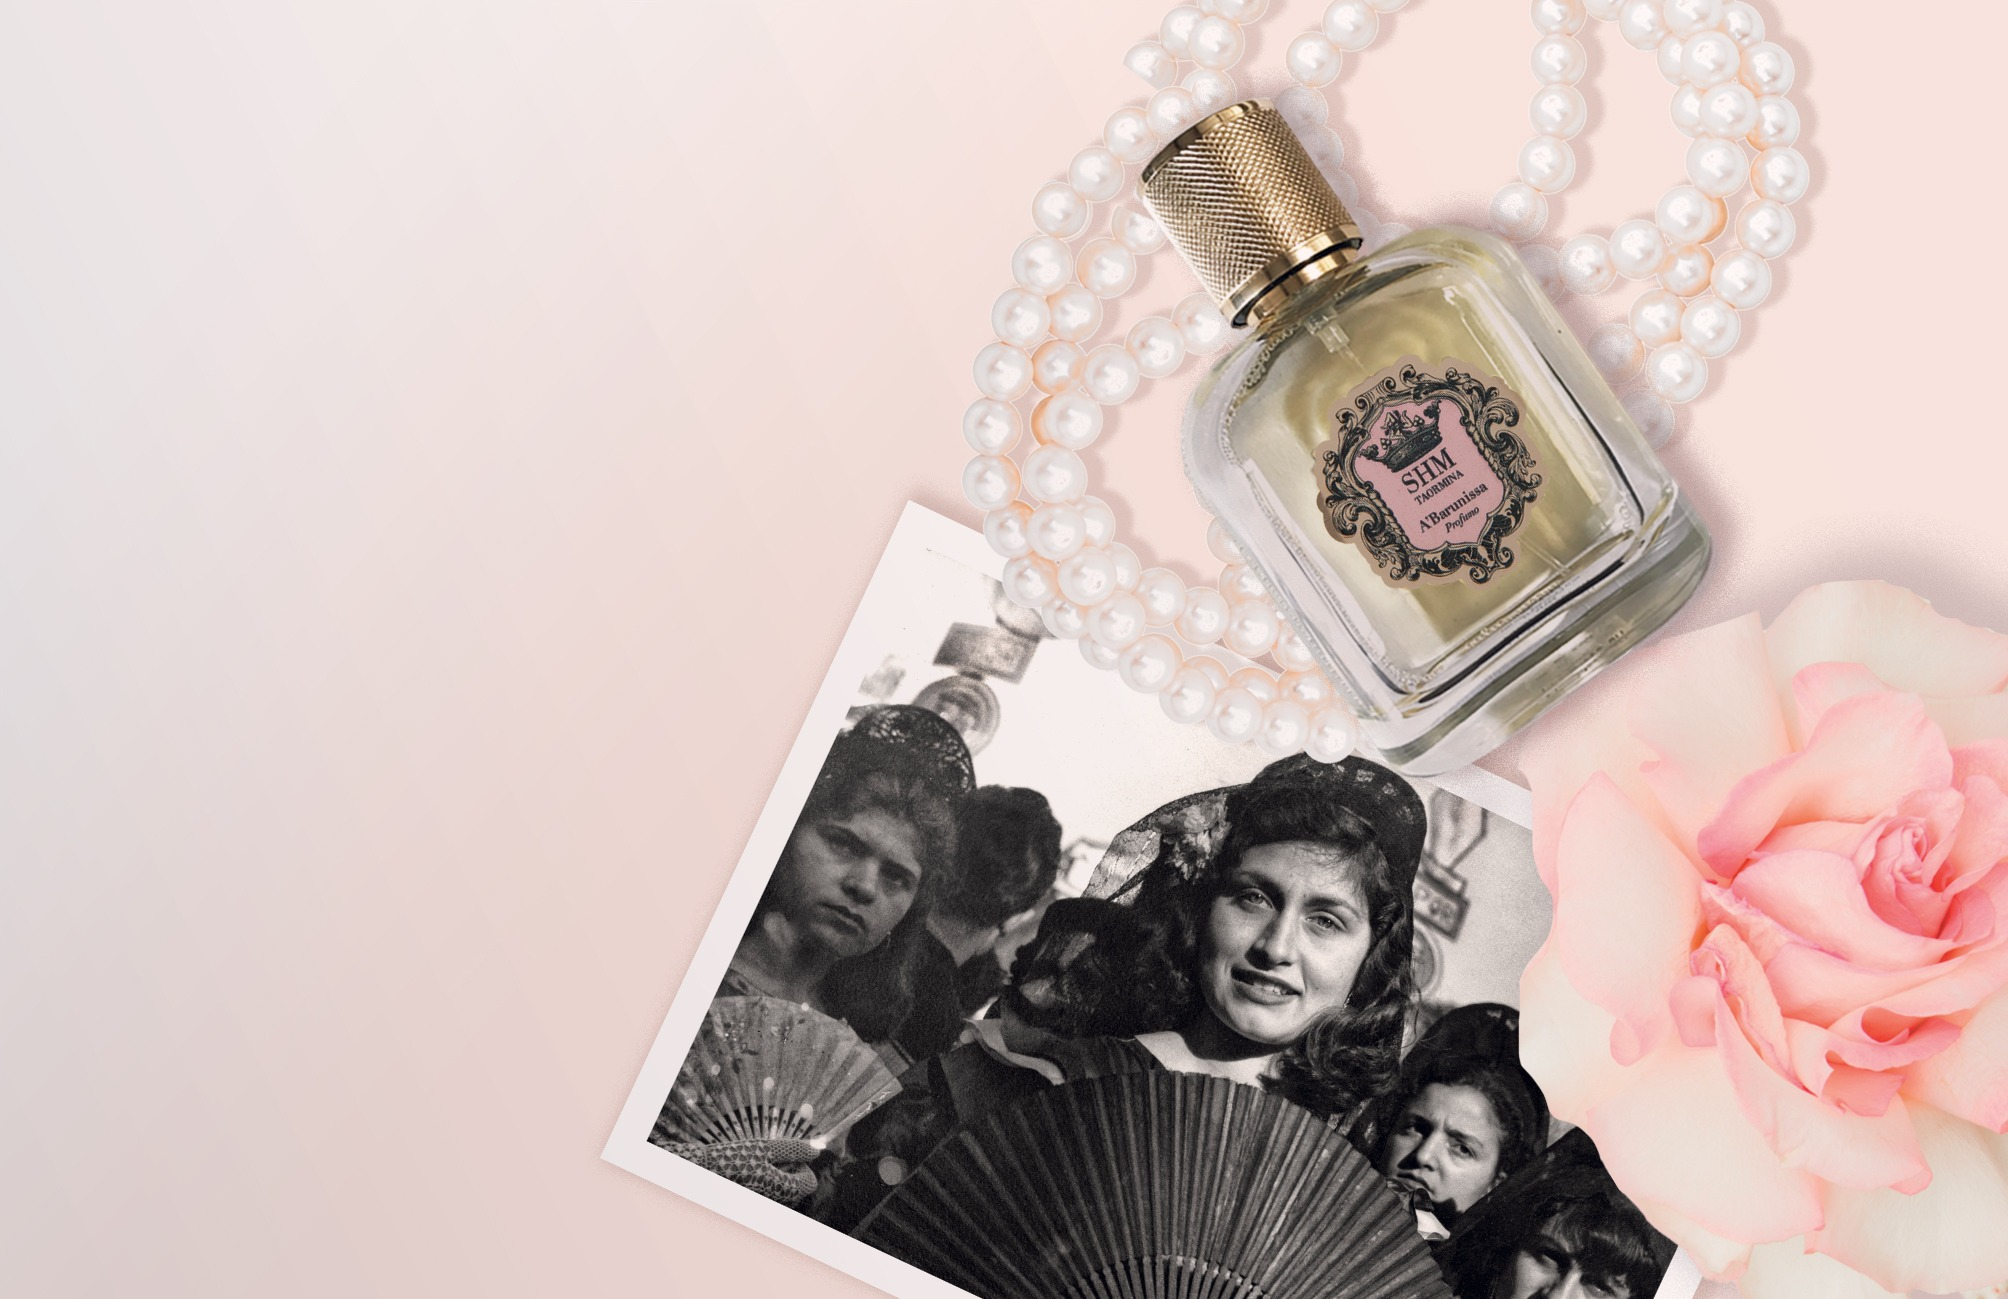 The perfume A'Barunissa, created by Alessandra Catalbiano. It is a tribute to a Sicilian woman with a damask rose and cinnamon scented skin and tick raven hair.